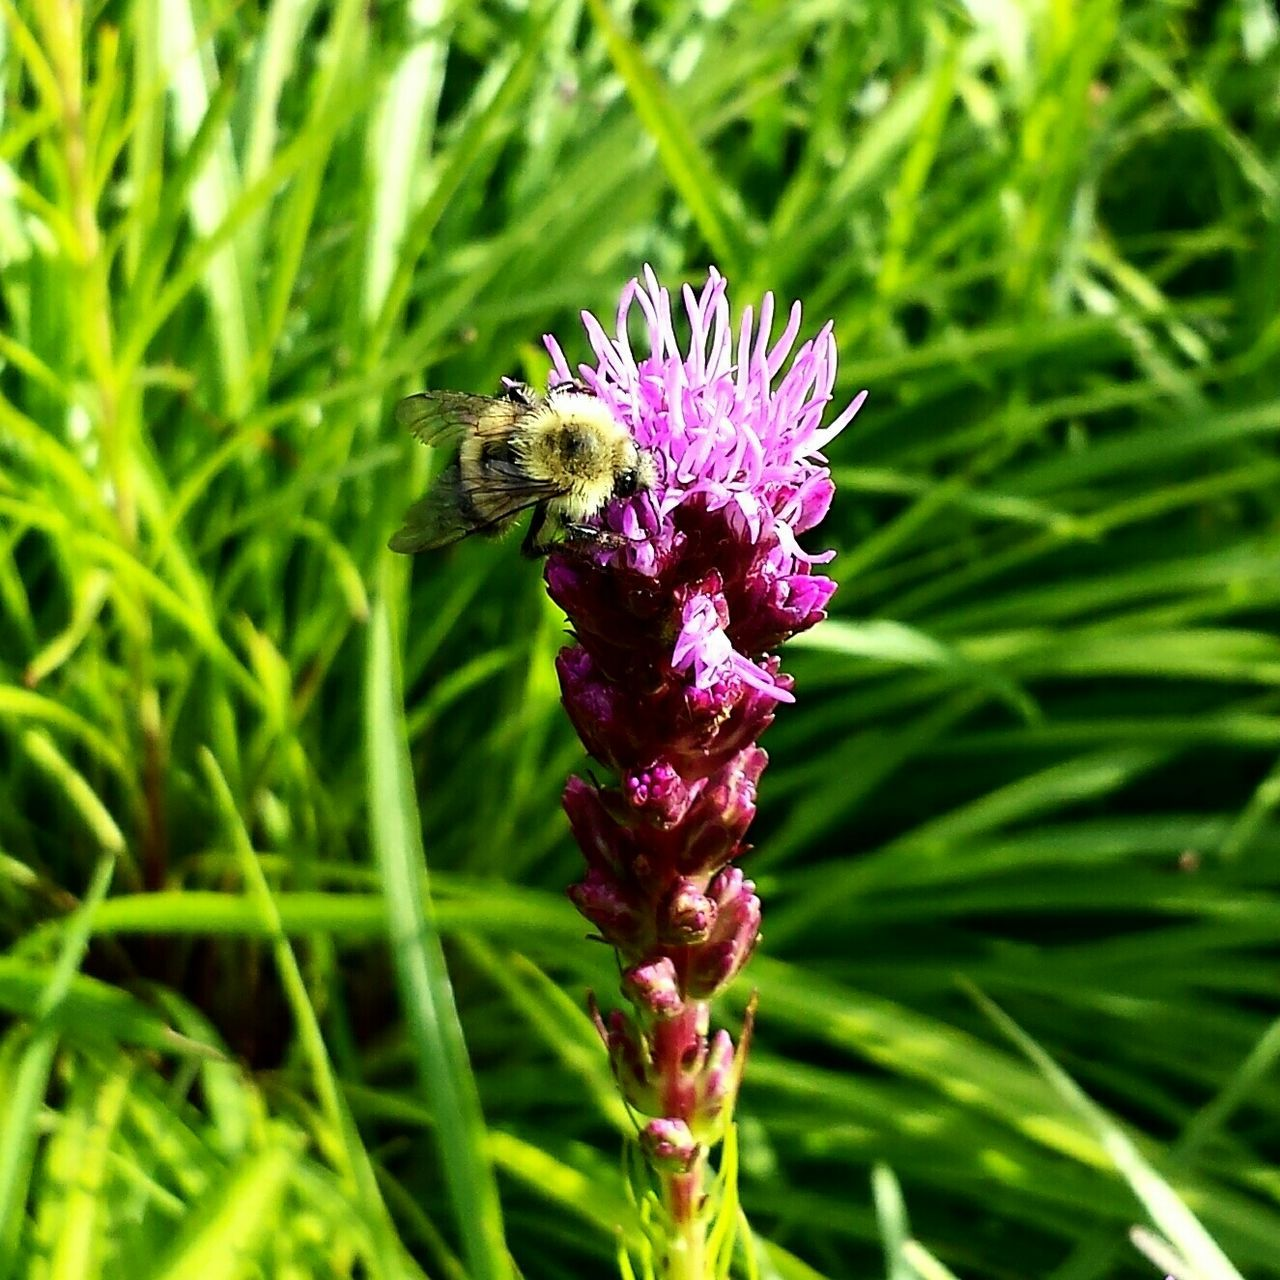 Flowers,Plants & Garden Flowers In My Garden Nature_collection Yardpic Bumble Bee Flower Collection Blazing Star Plantography EyeEm Nature Lover